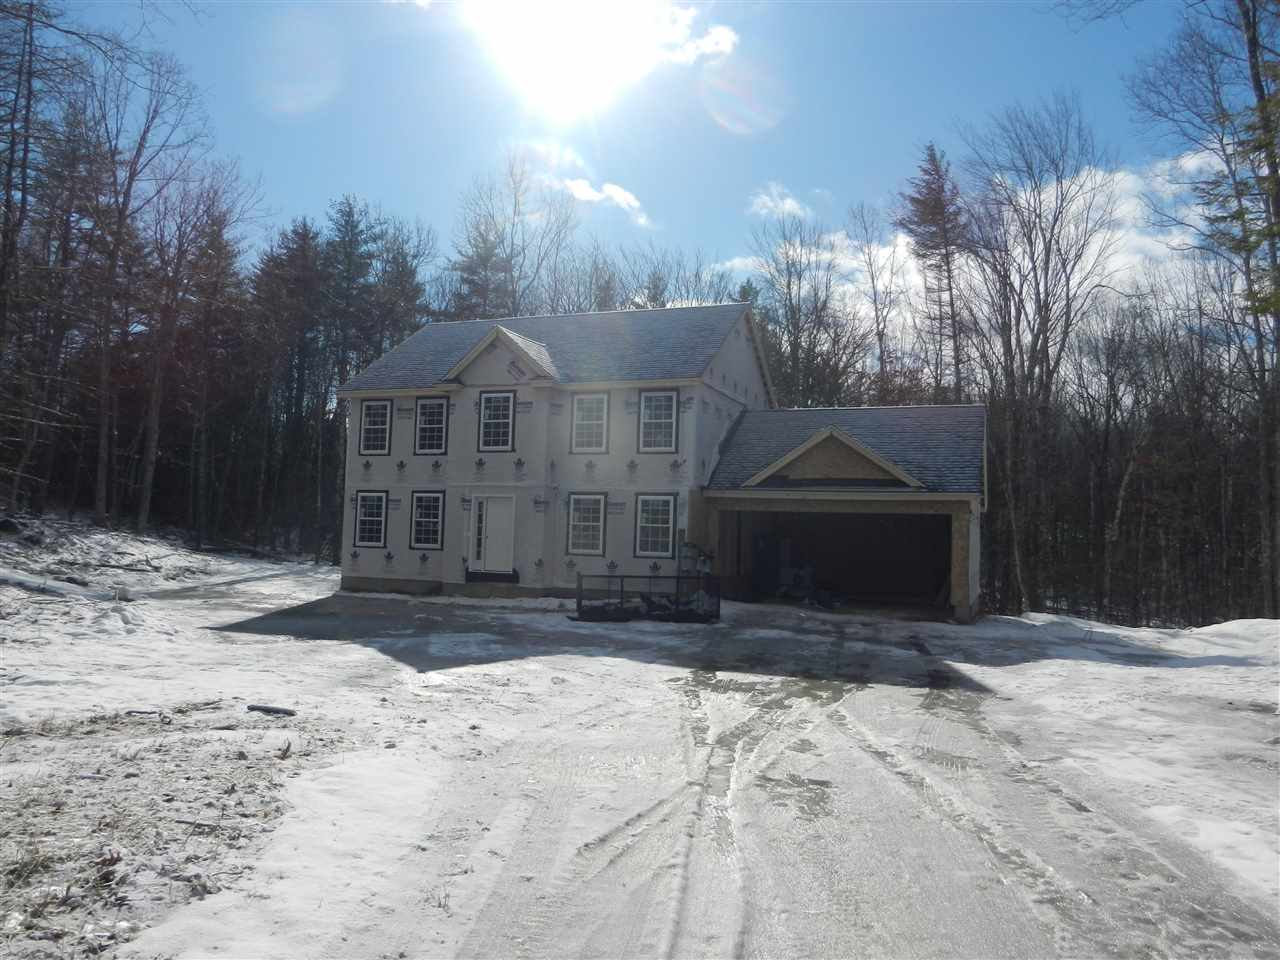 Photo of 4 Sandybrook Drive Raymond NH 03077